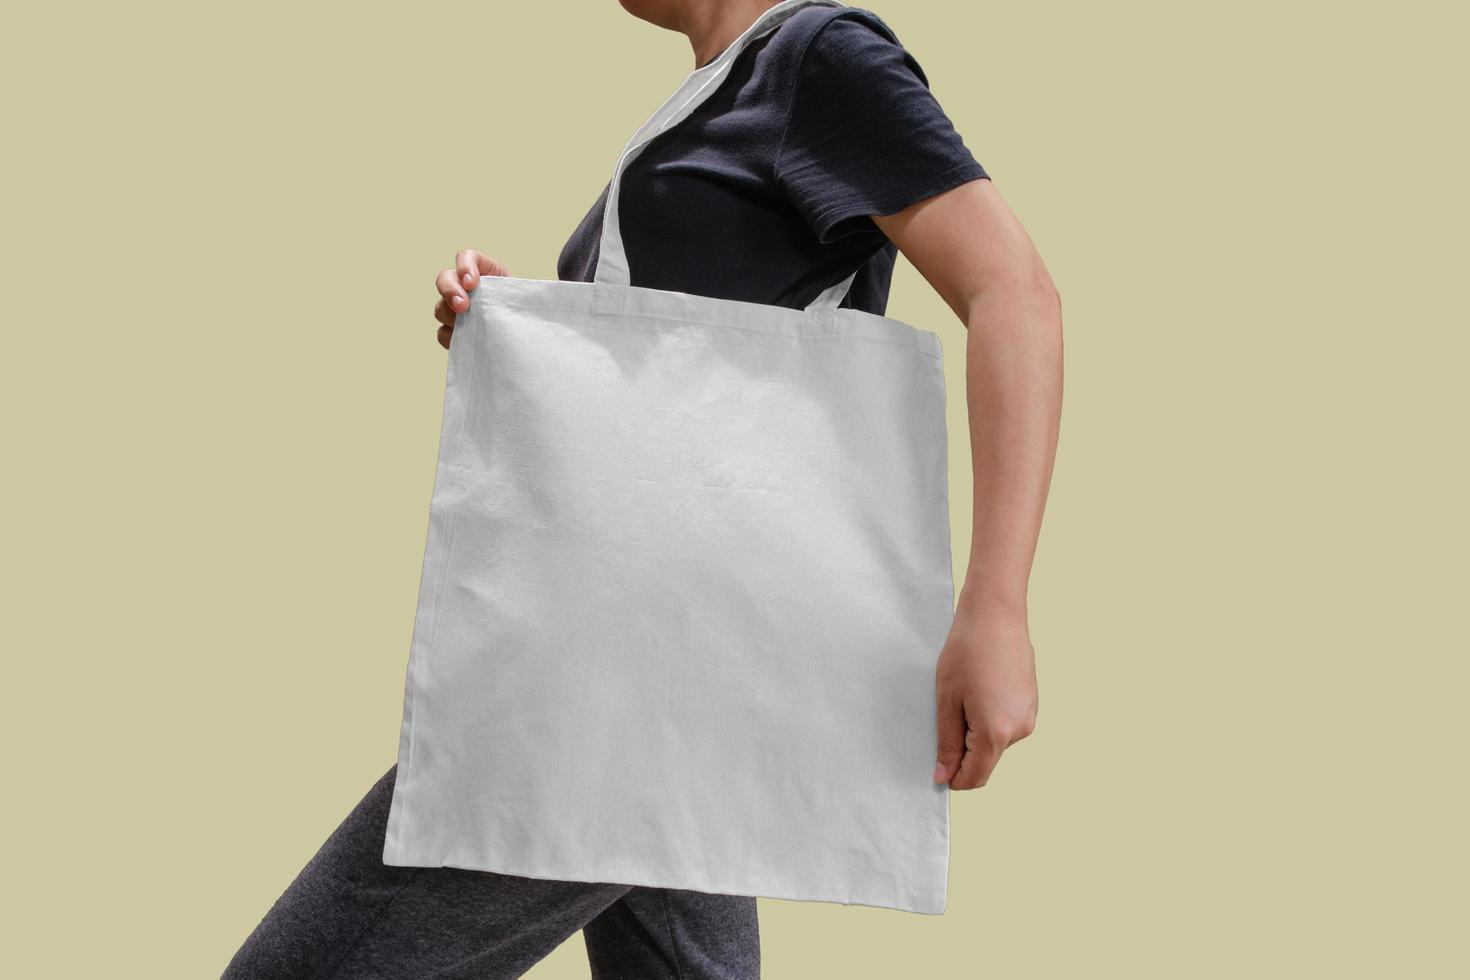 Woman holding fabric tote bag for mockup photo